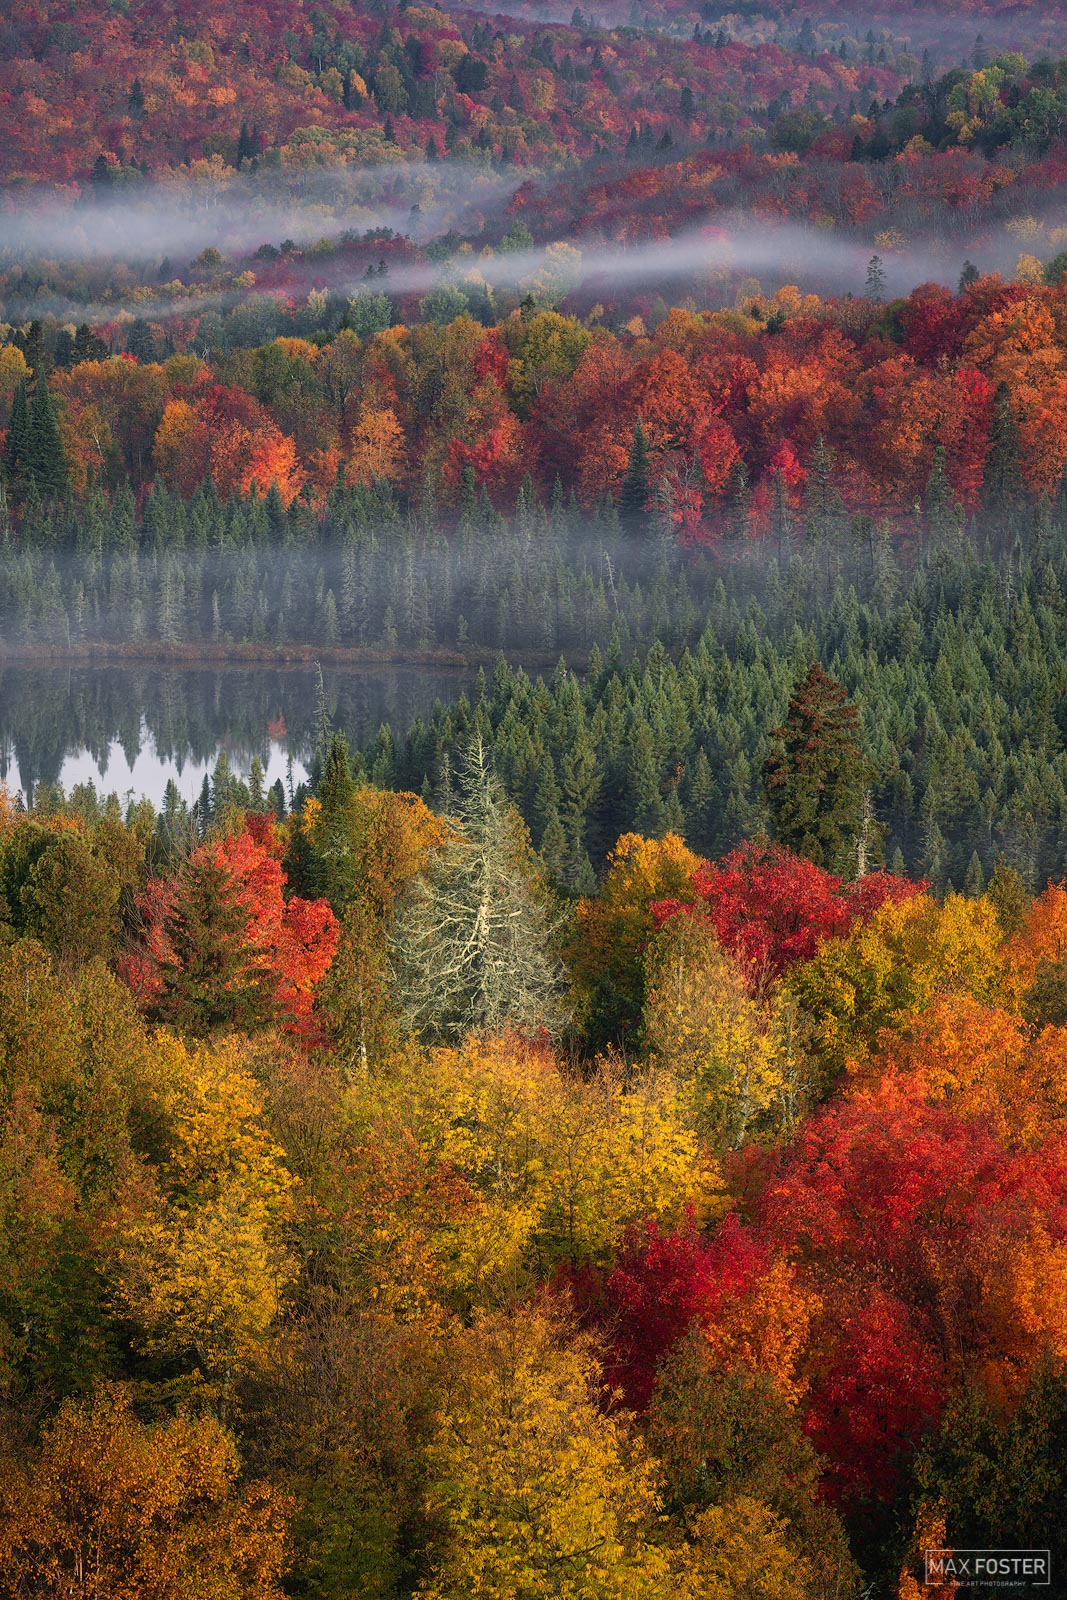 Lutsen, Minnesota, North Woods, Minnesota Nice, Superior National Forest, photo